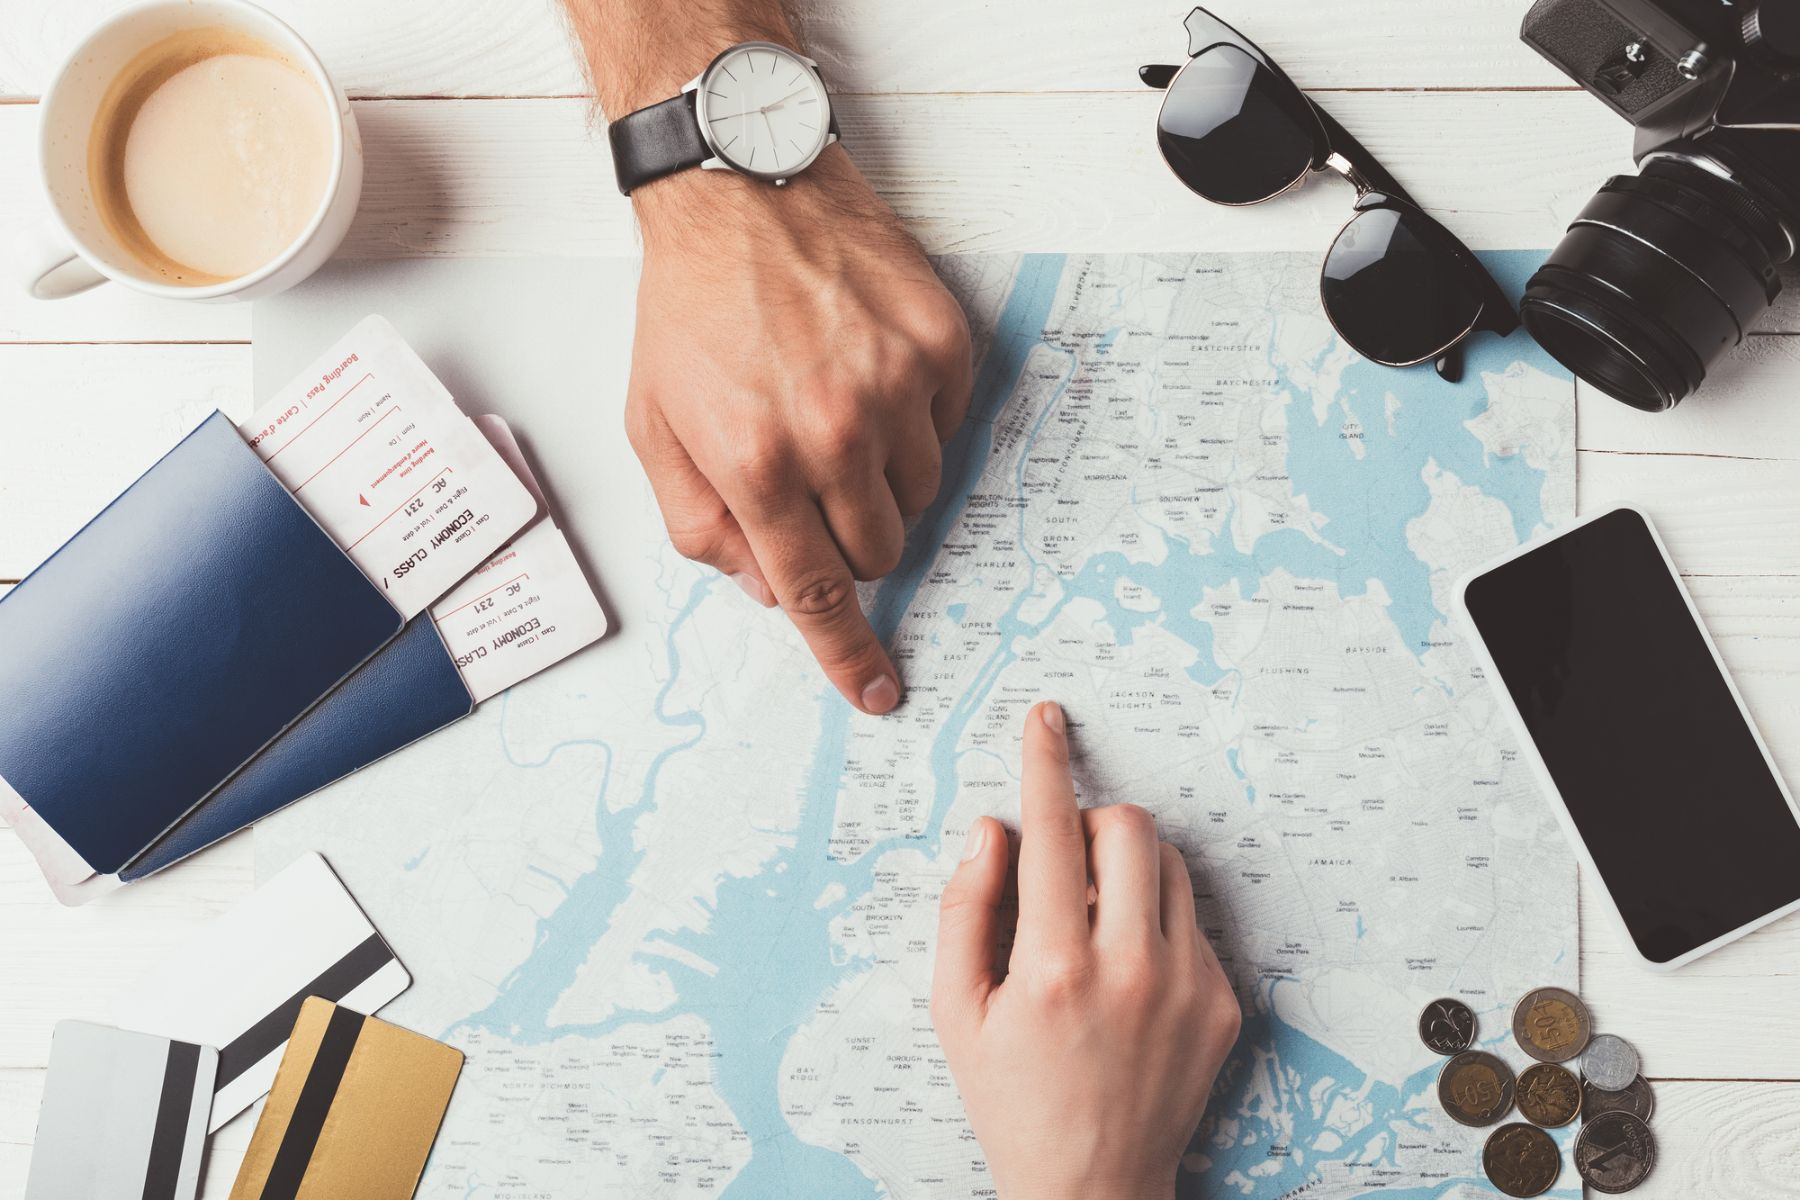 Hands pointing to a location on a map